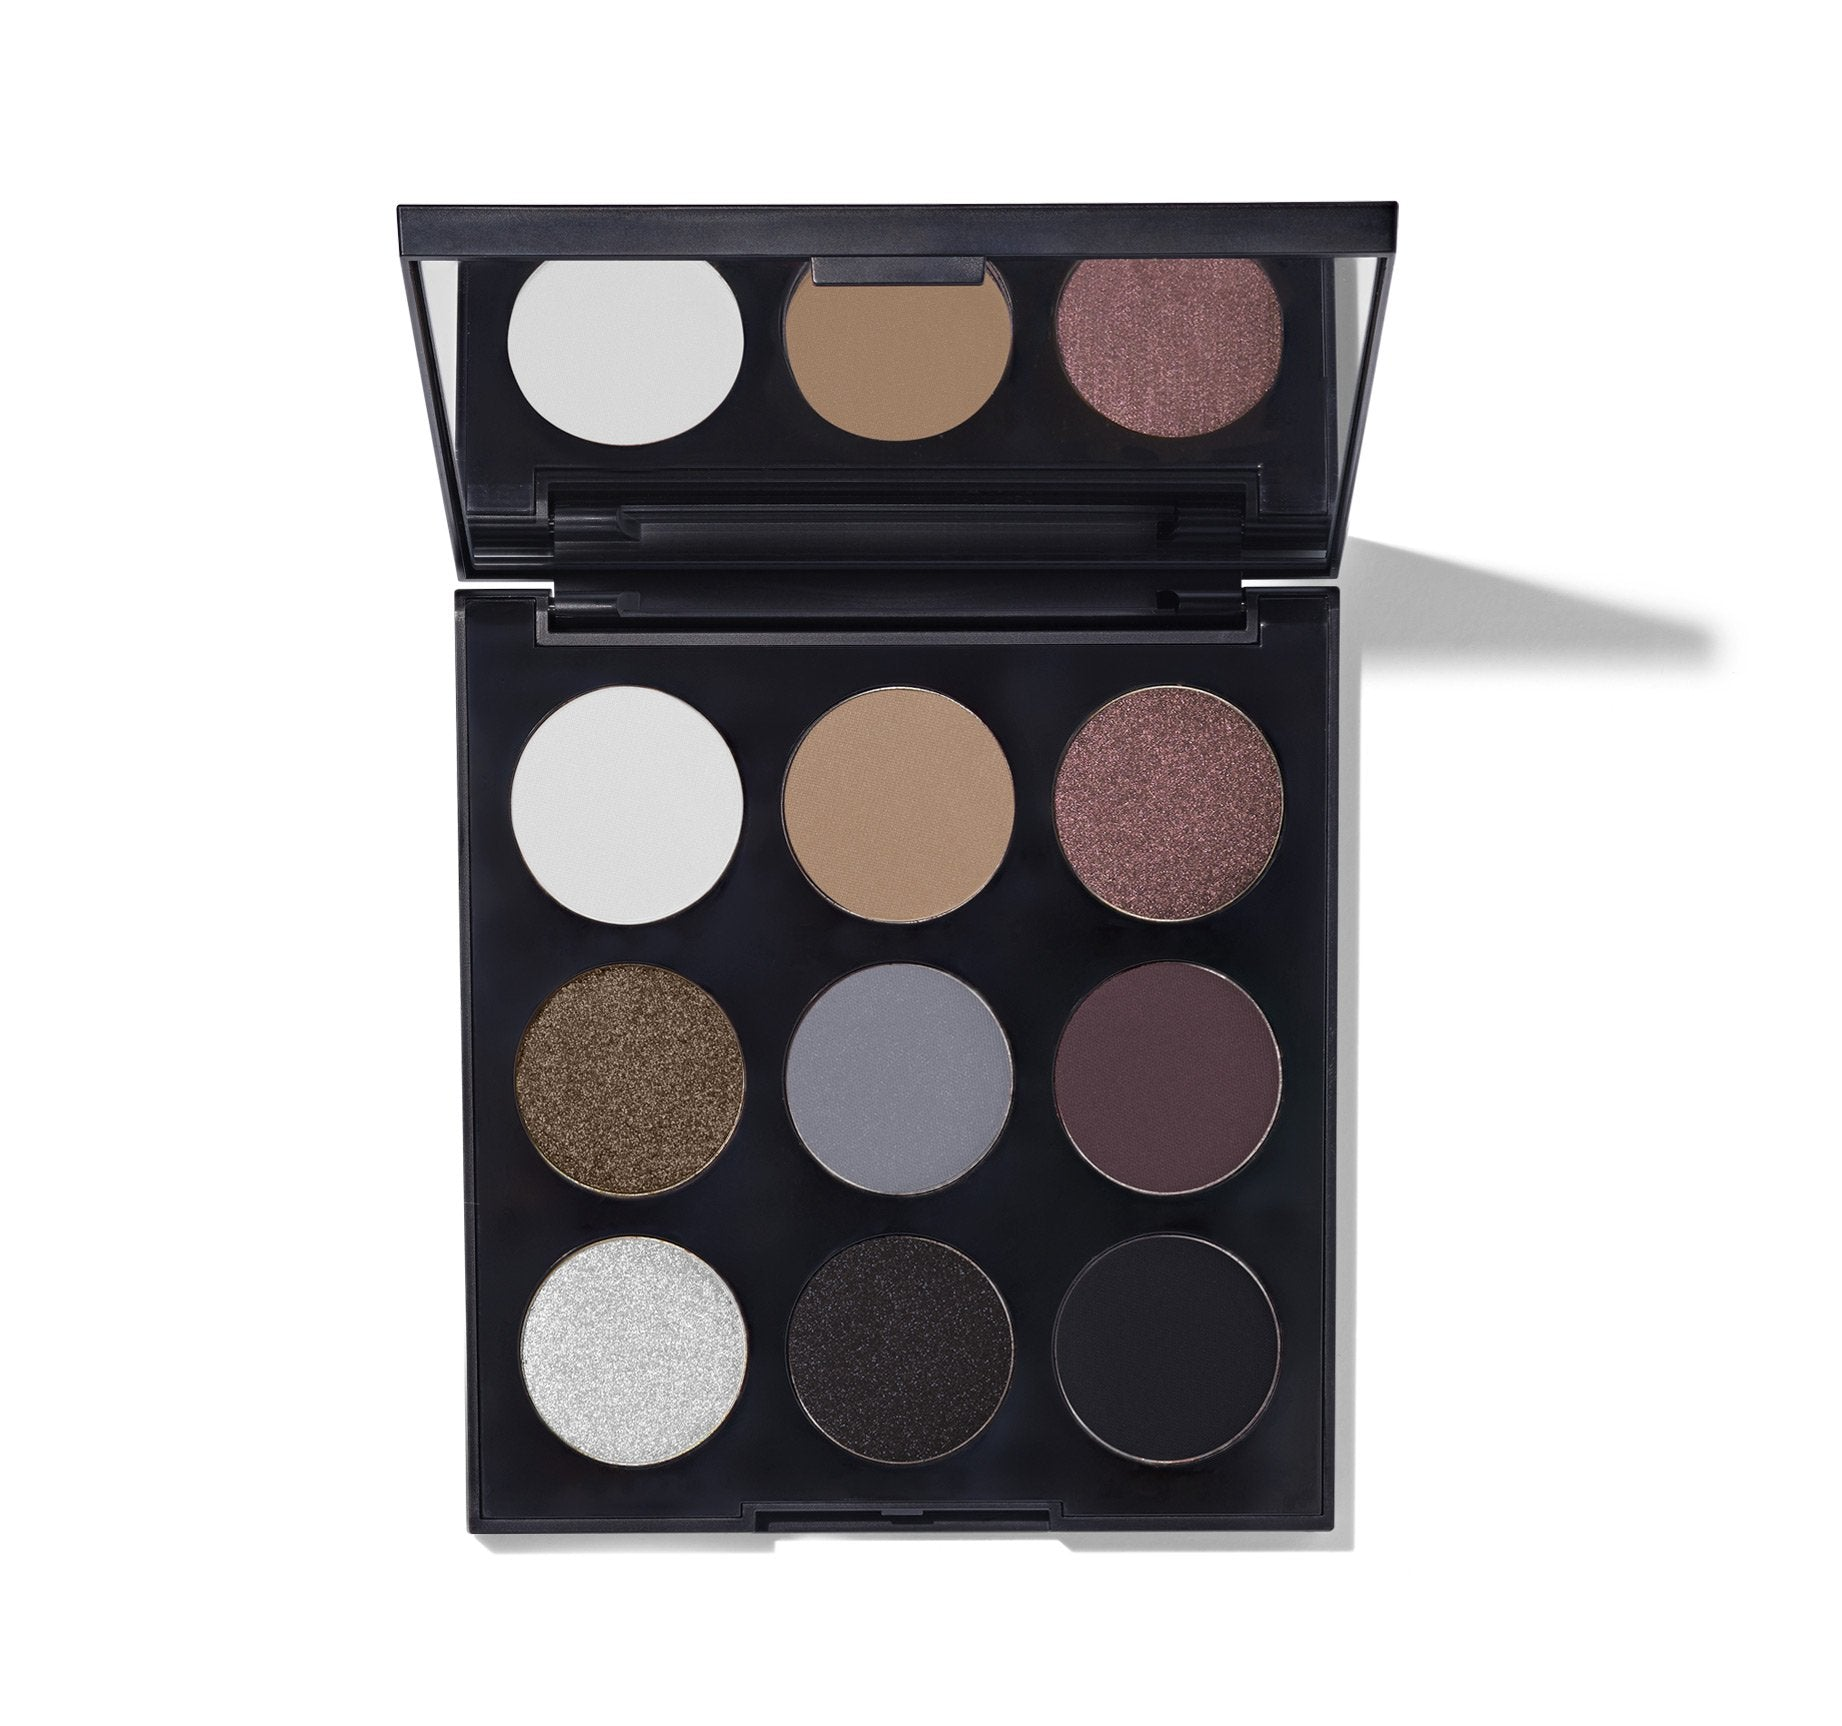 9W SMOKE & SHADOW ARTISTRY PALETTE, view larger image